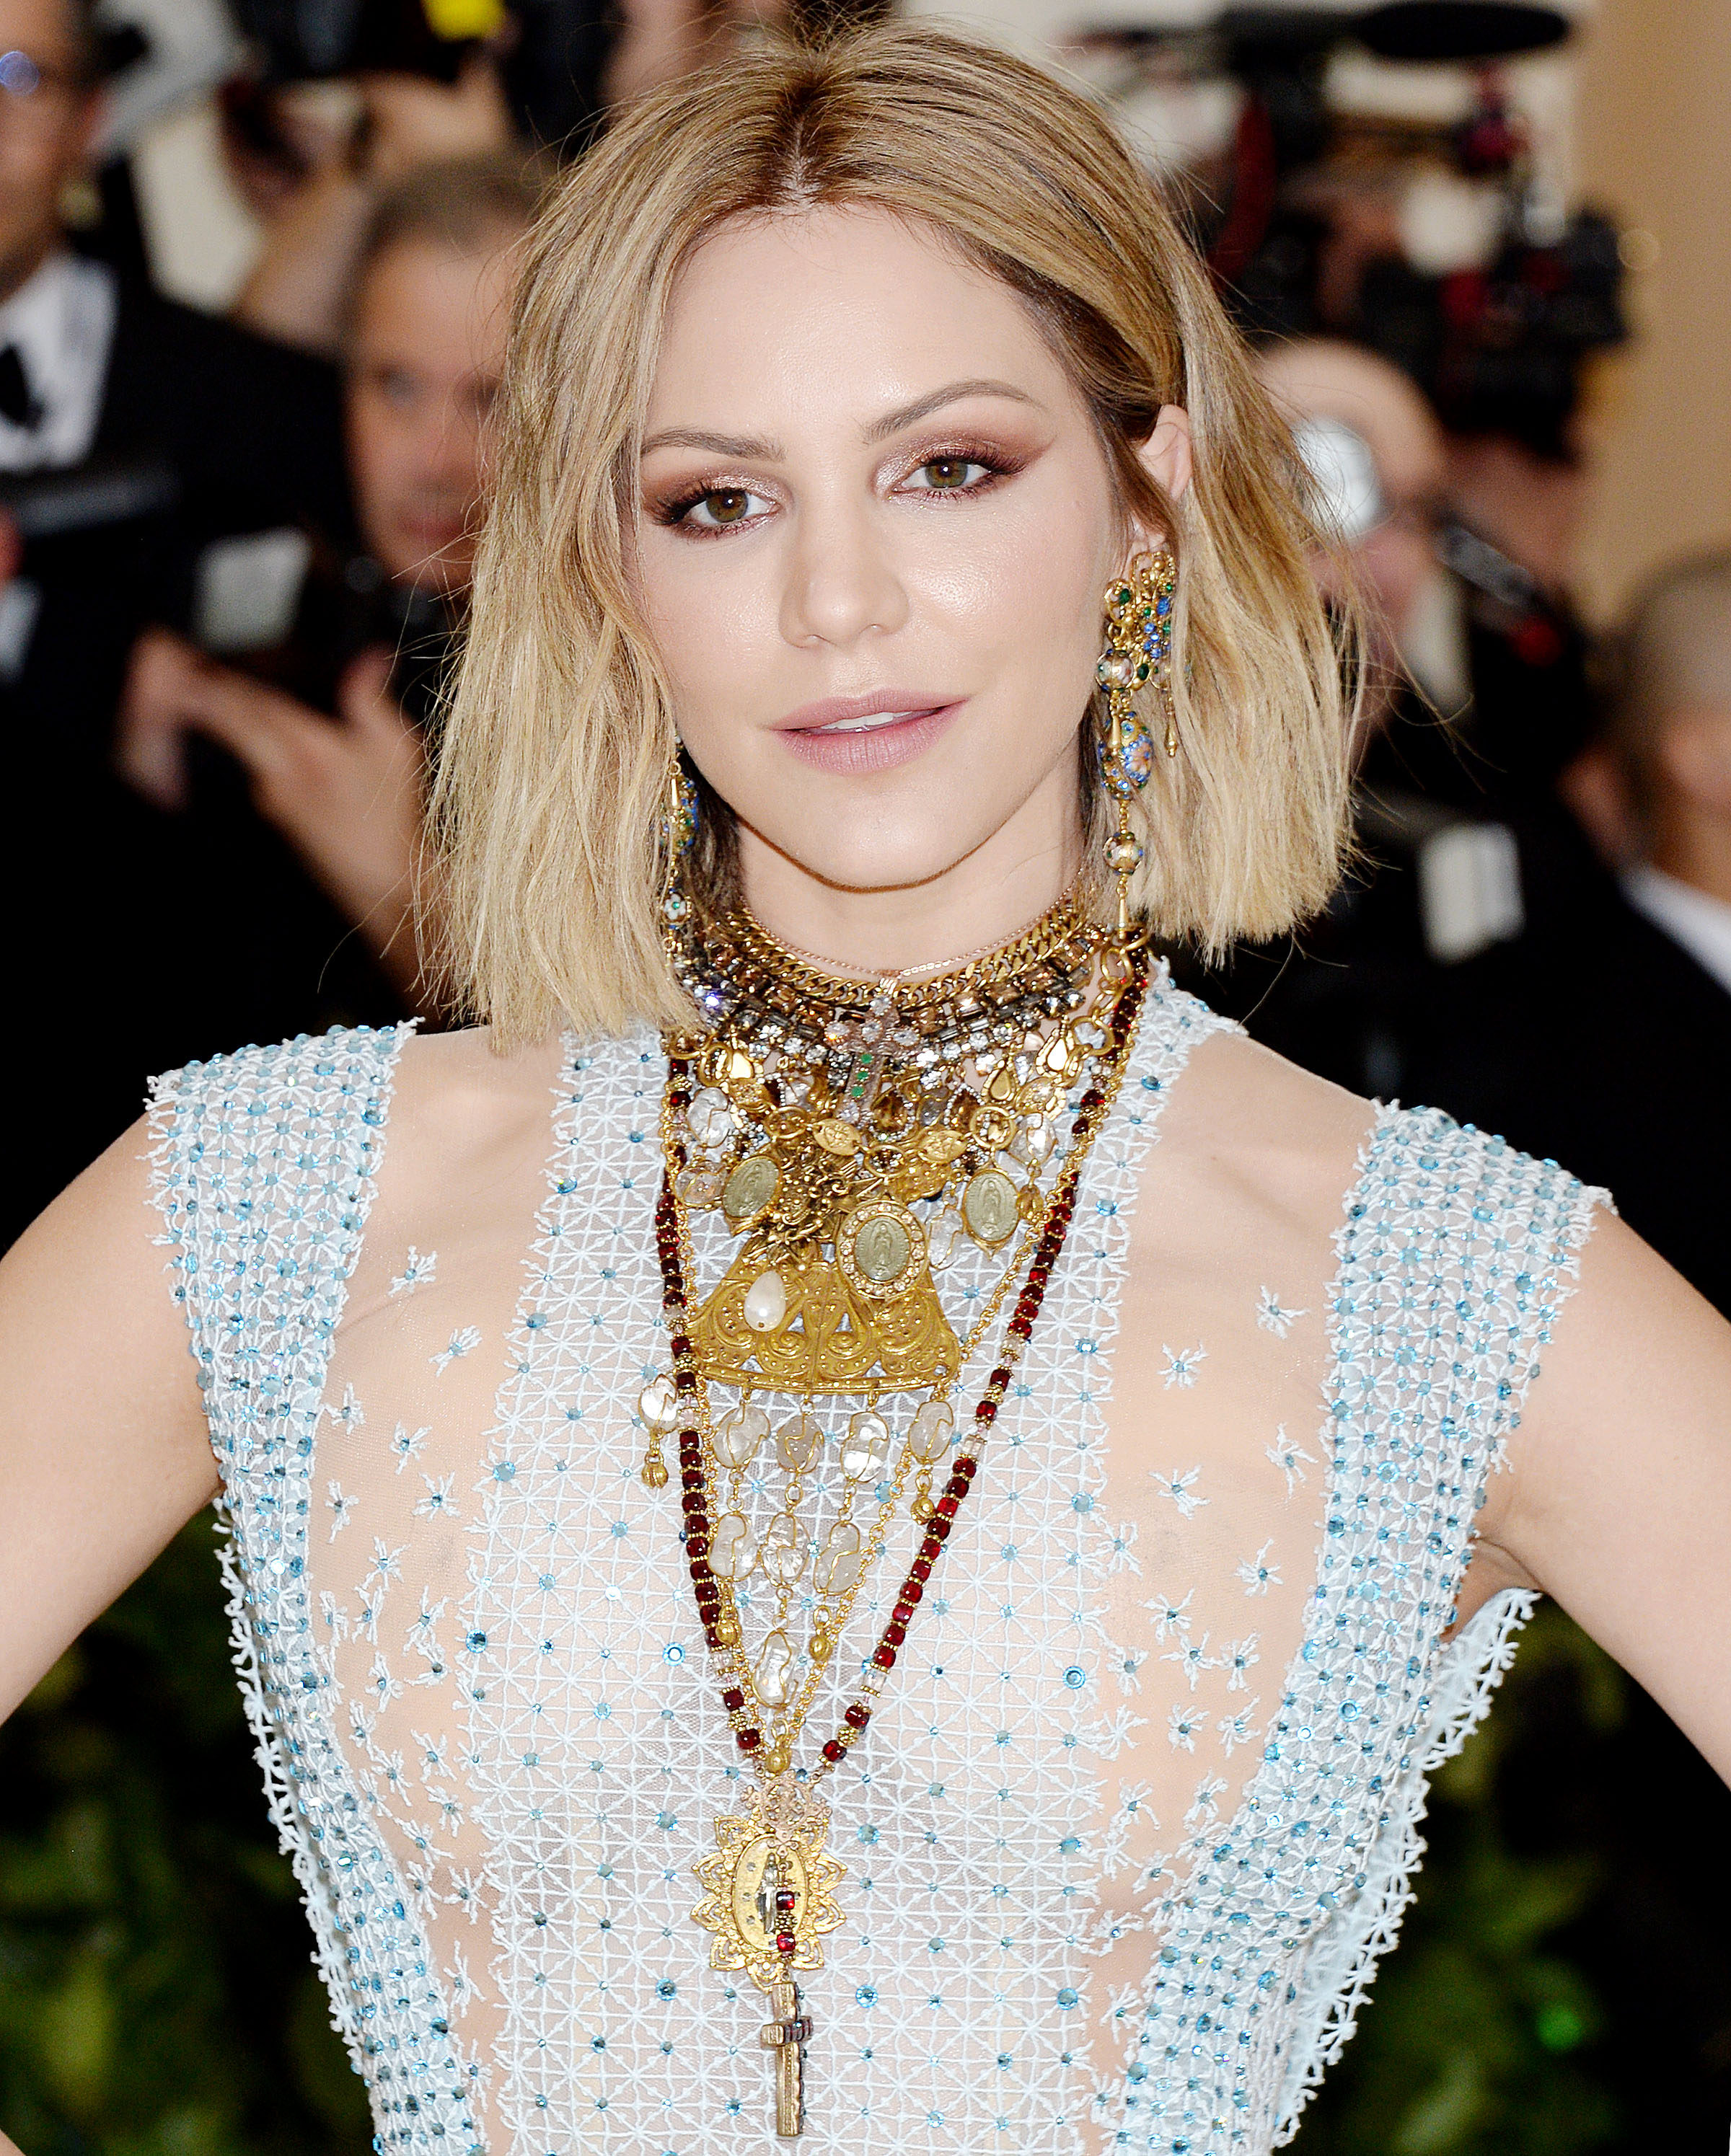 NO JUST JARED USAGE<BR/> 2018 Costume Institute Benefit: Celebrating the opening of Heavenly Bodies: Fashion and the Catholic Imagination - Arrivals <P> Pictured: Katharine McPhee <B>Ref: SPL1693541  080518  </B><BR/> Picture by: PCC/Splashnews<BR/> </P><P> <B>Splash News and Pictures</B><BR/> Los Angeles:310-821-2666<BR/> New York:212-619-2666<BR/> London:870-934-2666<BR/> <span id=